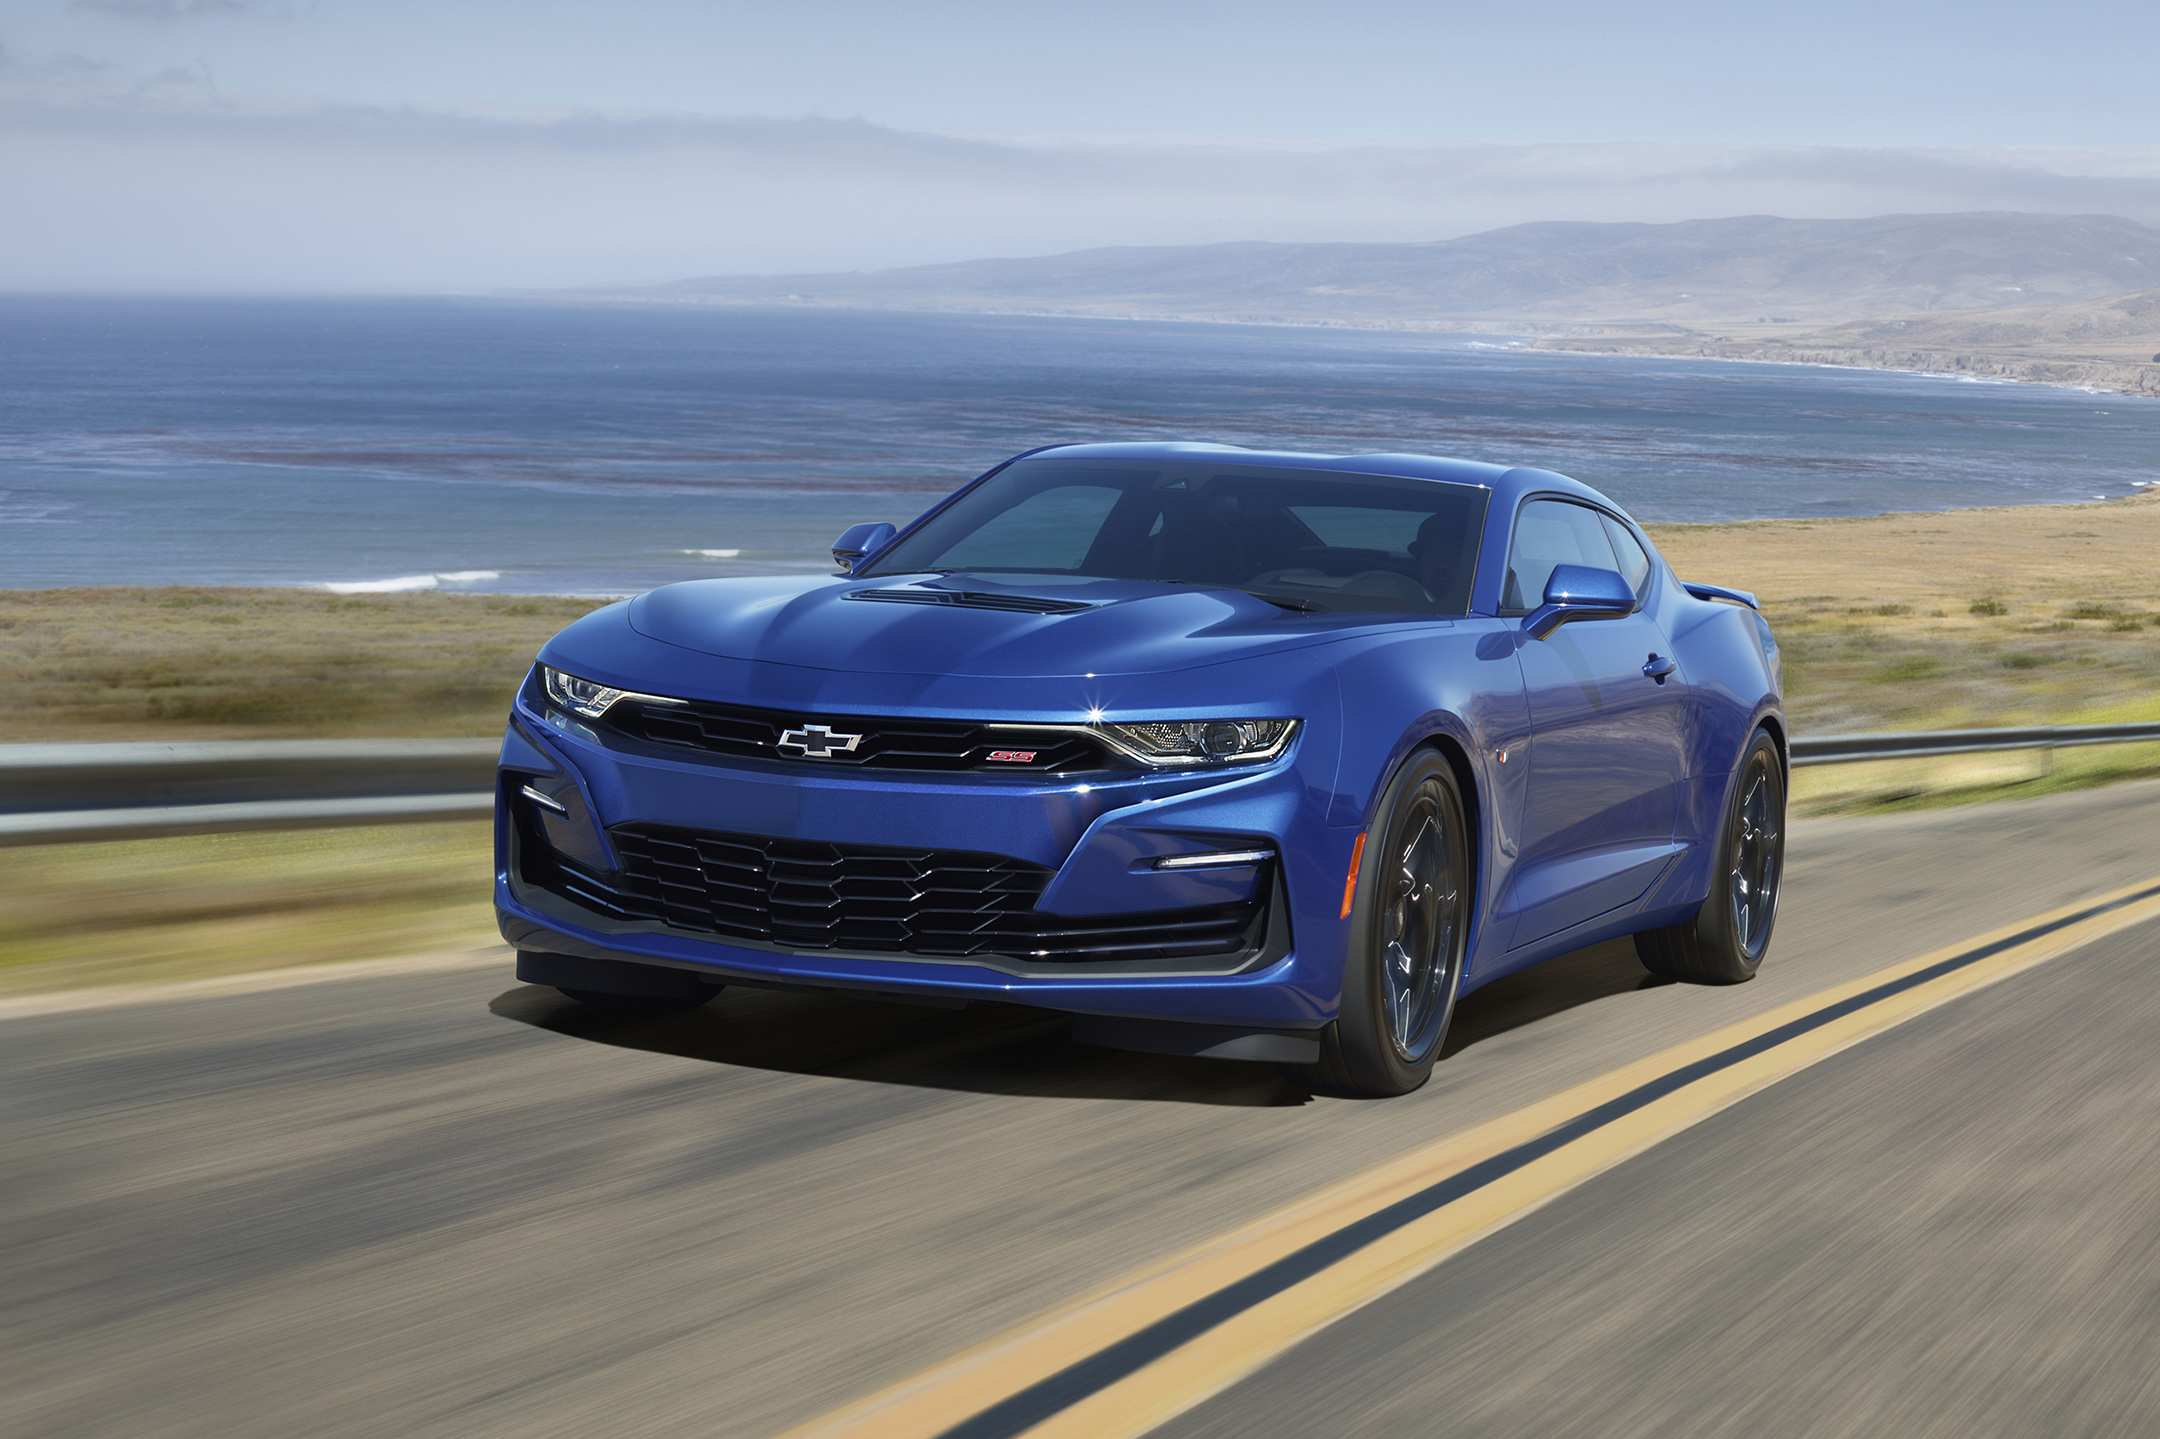 76 Concept of Chevrolet Models 2020 Release with Chevrolet Models 2020